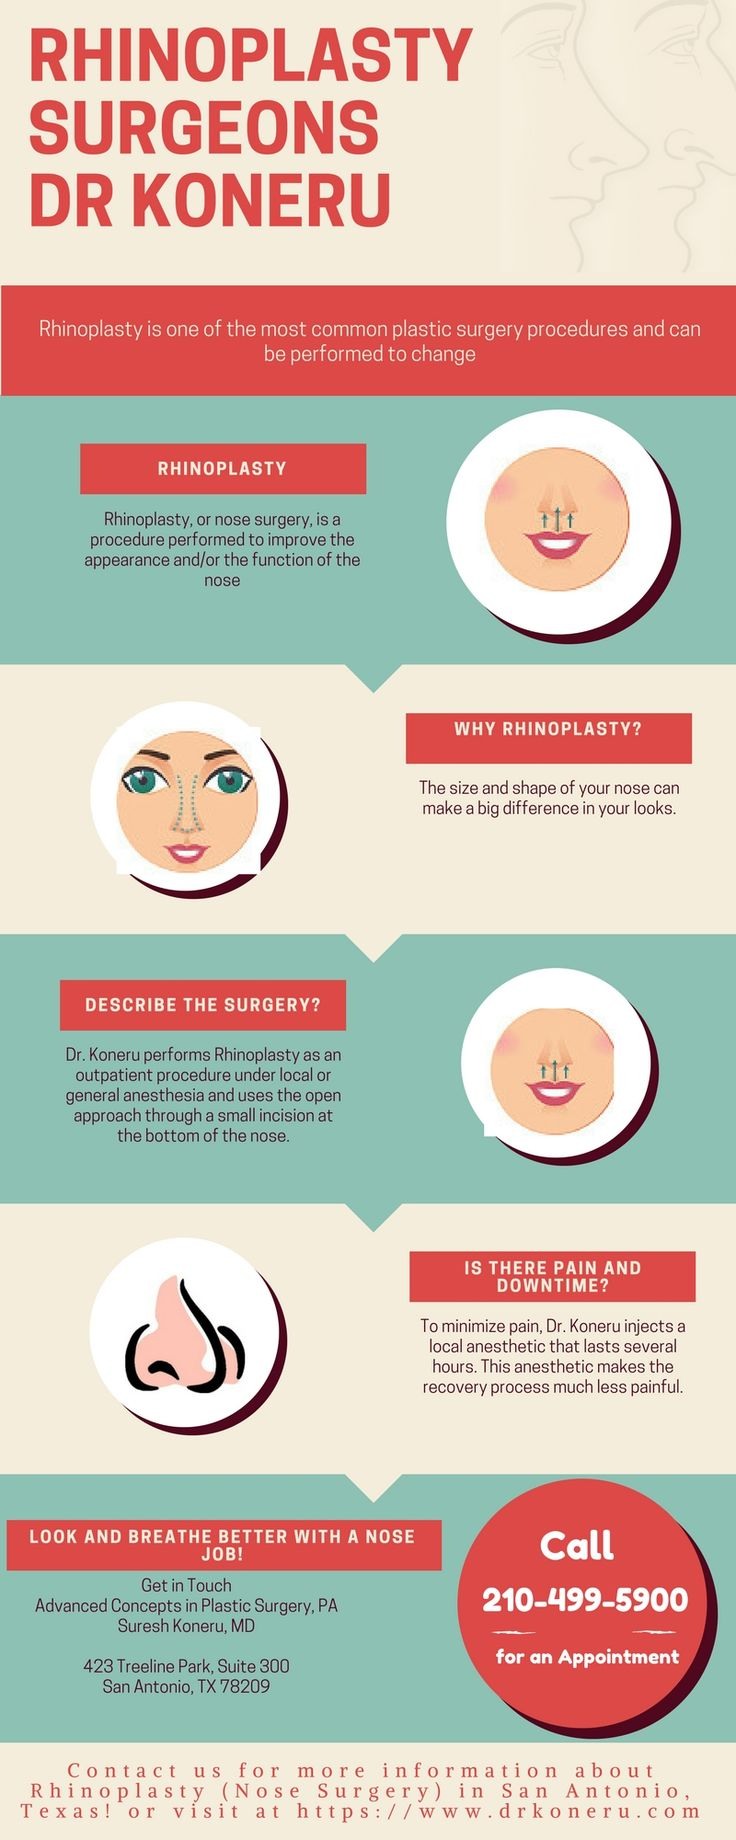 Want to do Rhinoplasty Surgery? Dr Koneru offers best nose reshaping surgery in which the surgeon reshapes the nose that suits your face.